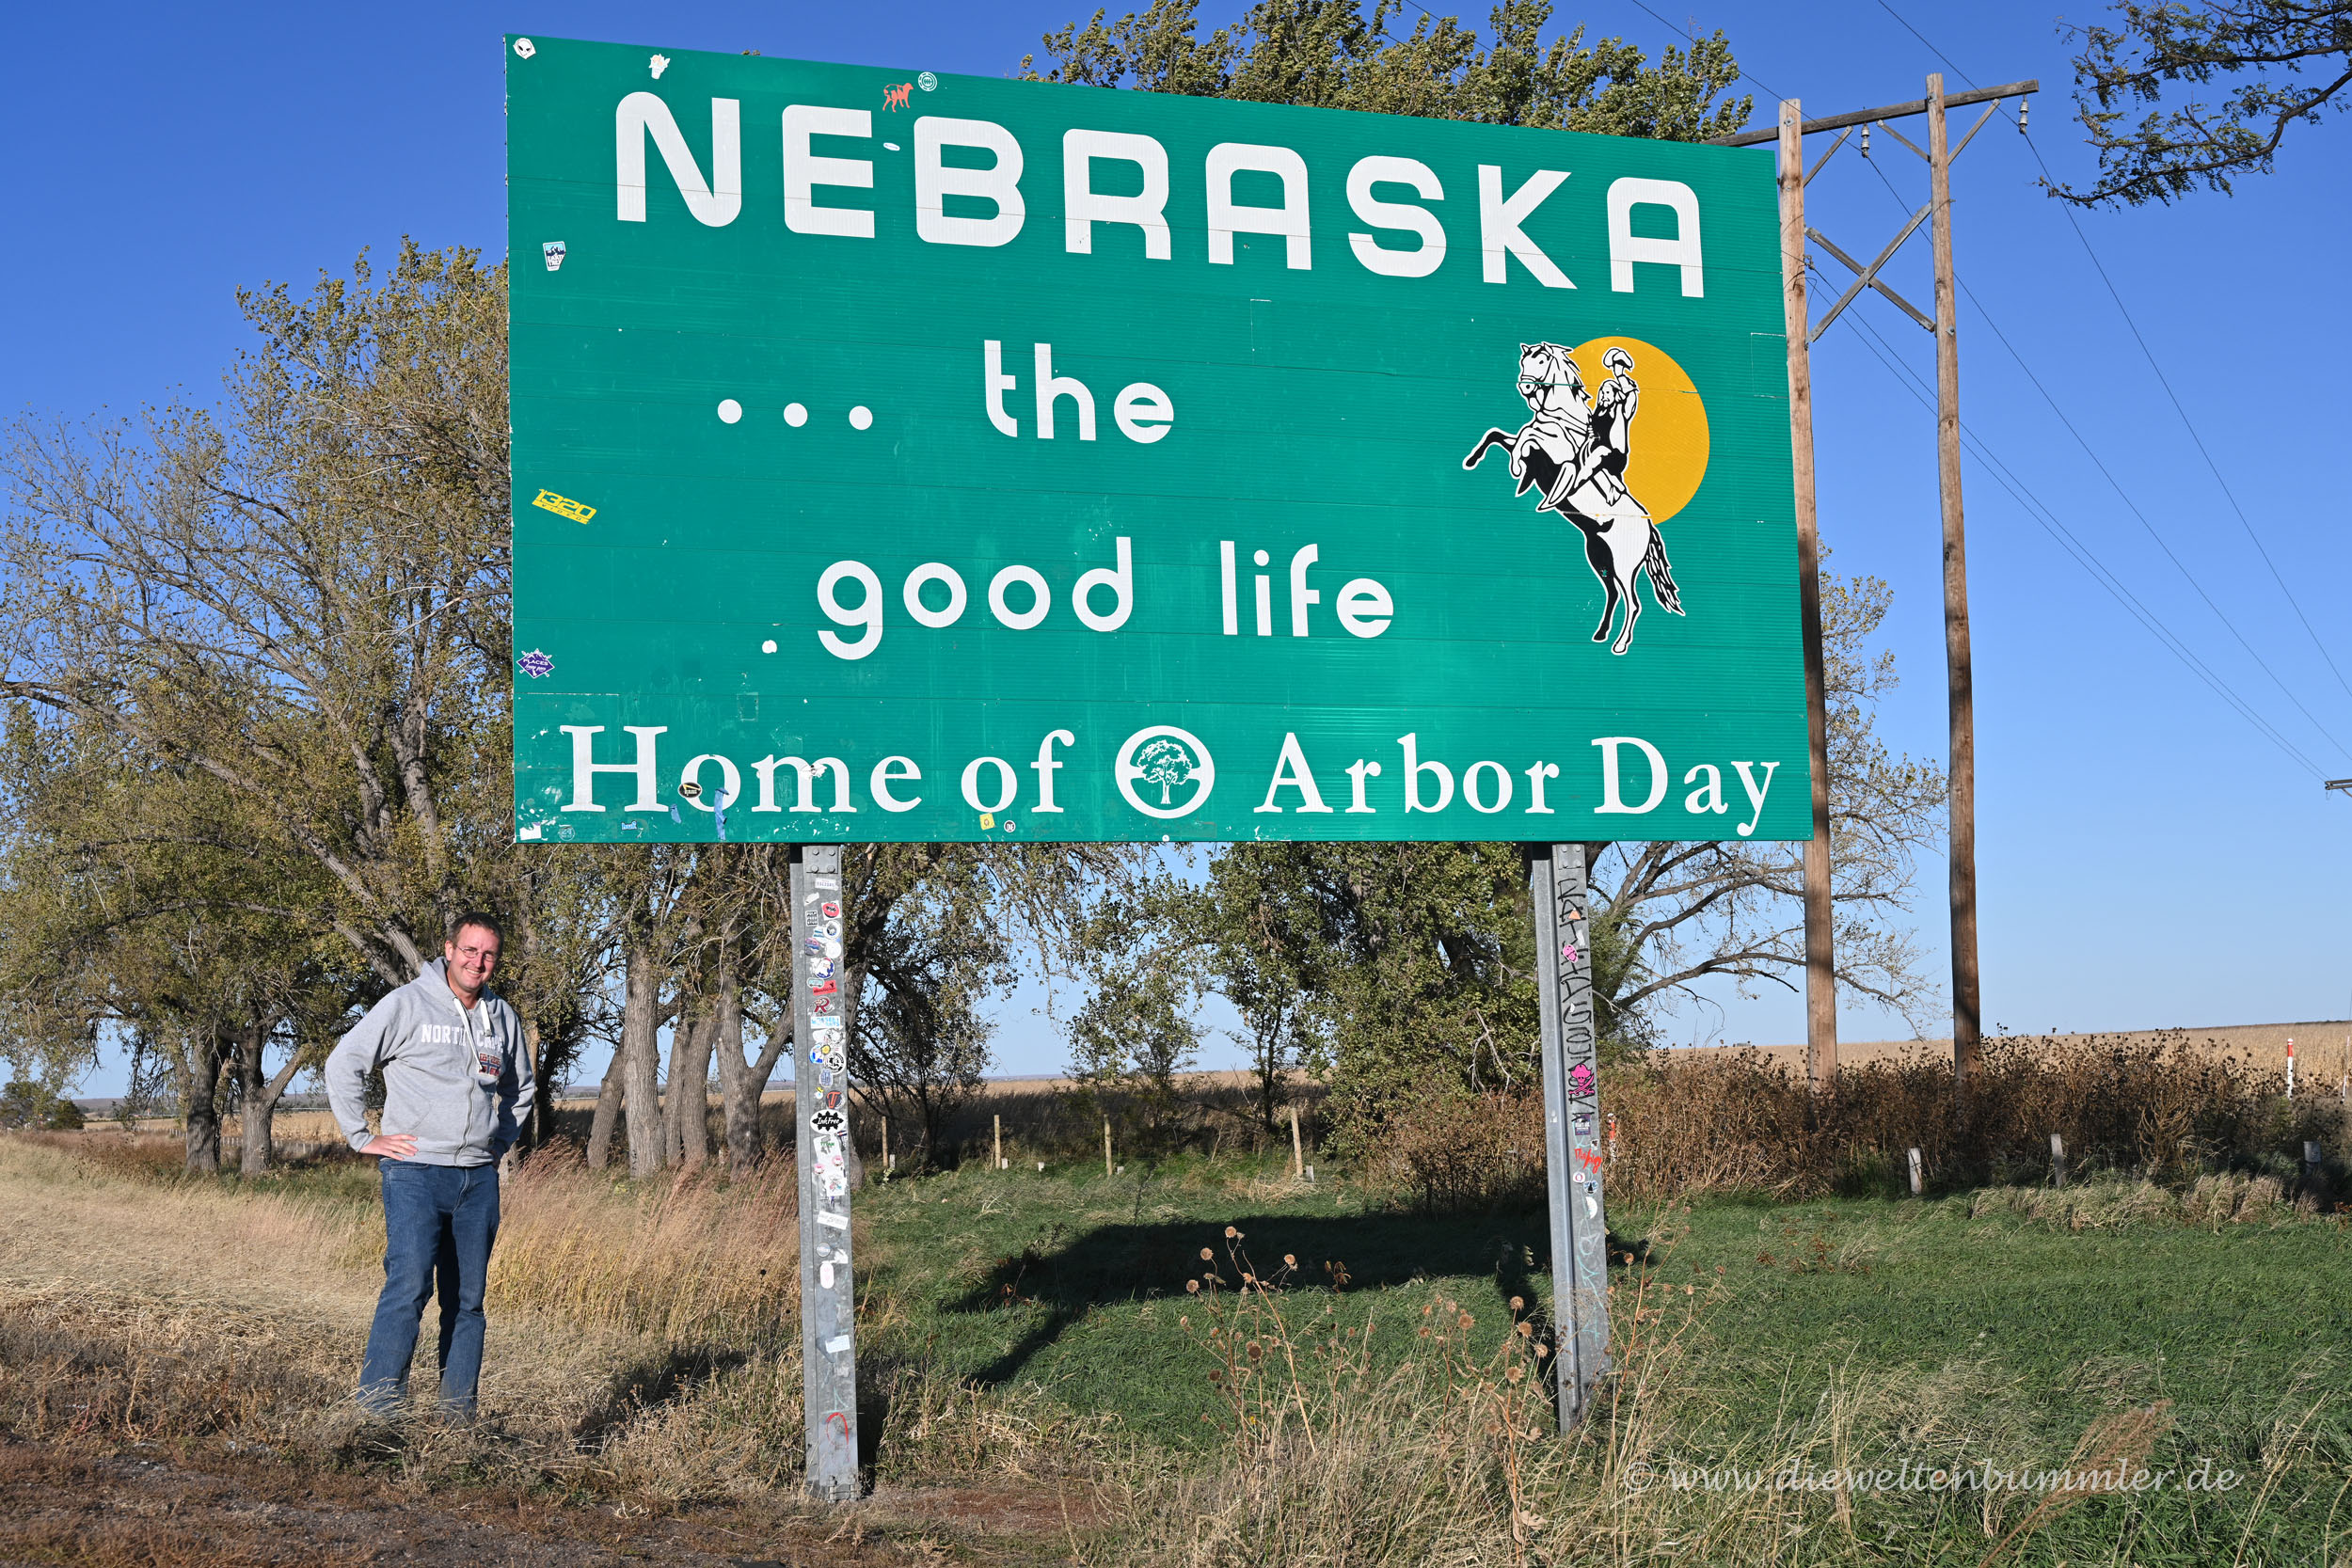 Michael Moll am Nebraska Welcome Sign